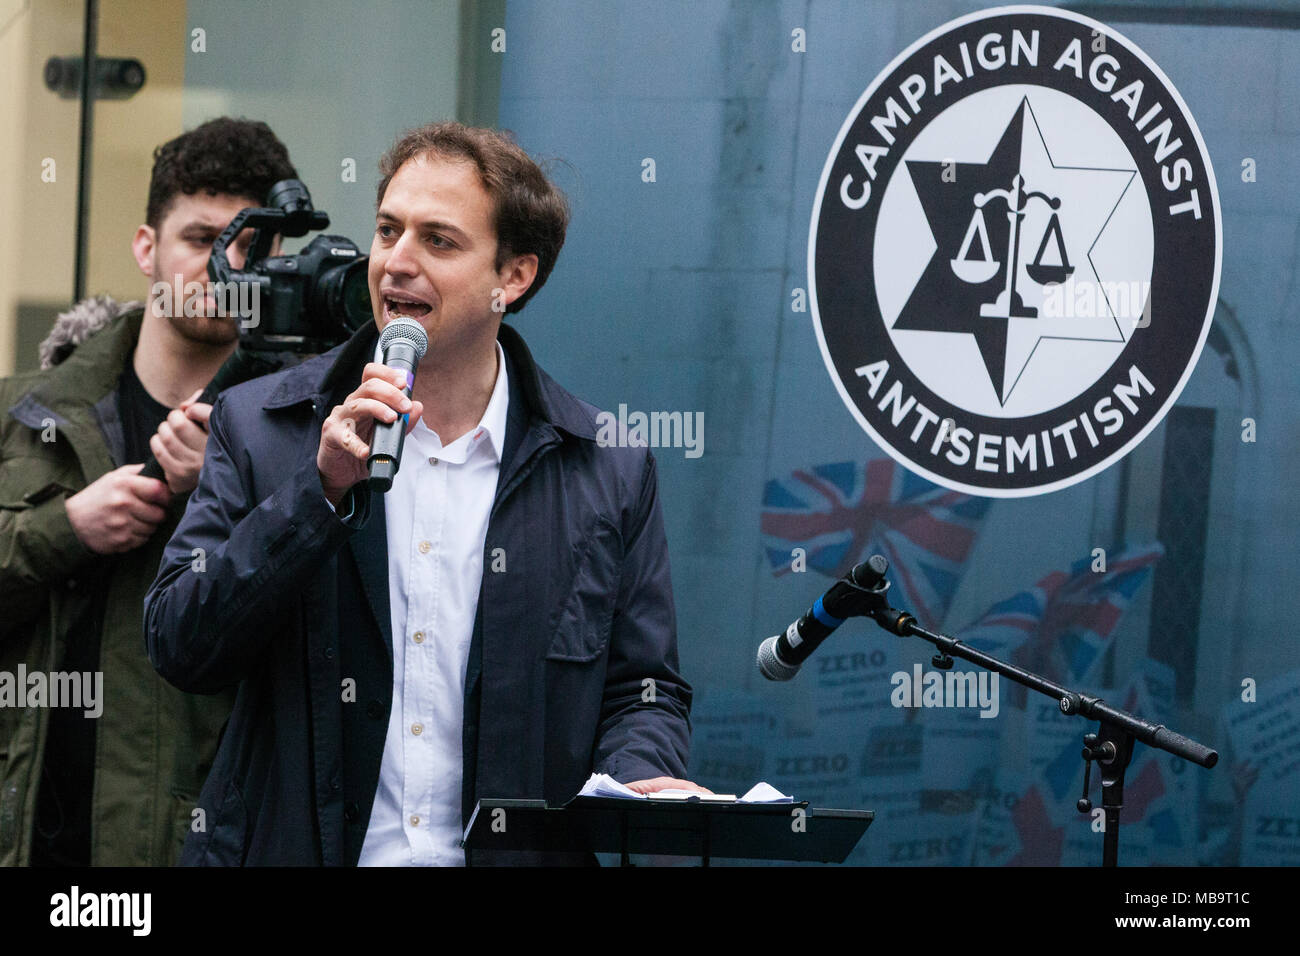 London, UK. 8th April, 2018. Gideon Falter, Chairman of the Campaign Against Antisemitism, addresses Jews and non-Jews attending a demonstration organised by the Campaign Against Antisemitism outside the head office of the Labour Party to apply pressure on its leadership to demonstrate a 'zero tolerance' approach to anti-Semitism. Credit: Mark Kerrison/Alamy Live News - Stock Image